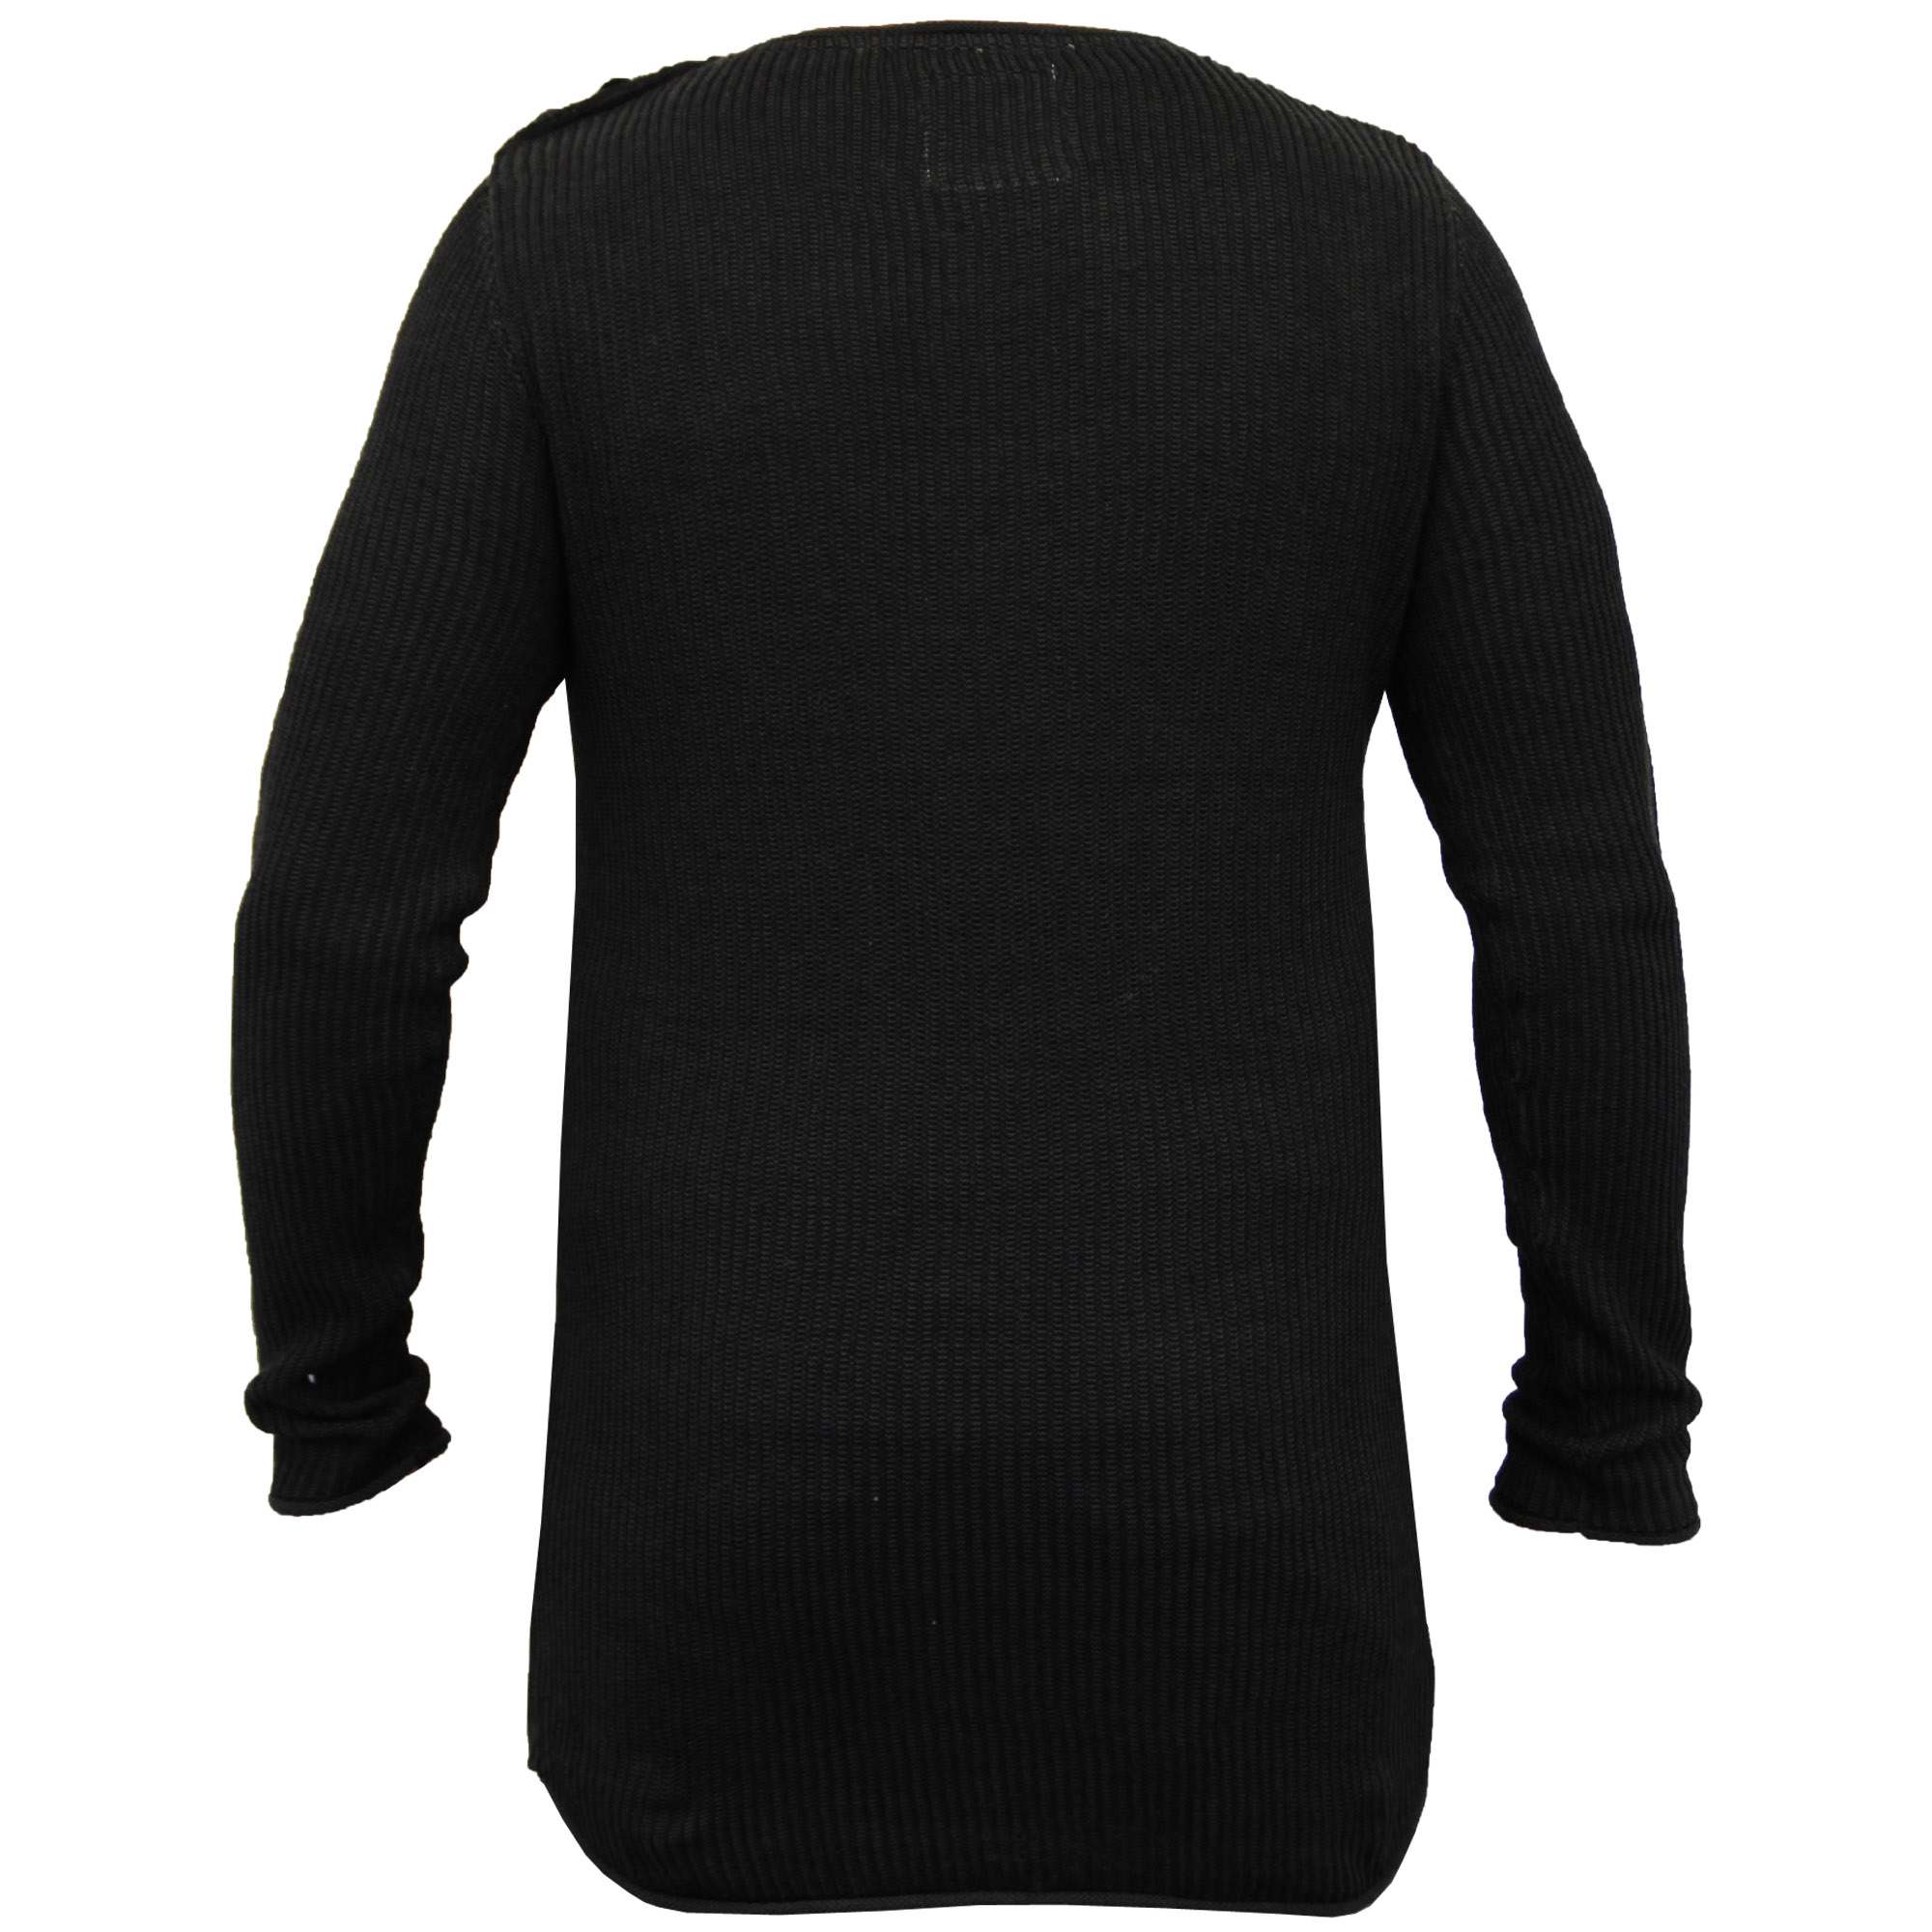 Mens-Long-Line-Jumper-Soul-Star-Sweater-High-Low-Hem-Top-Knitted-Pullover-Winter thumbnail 9